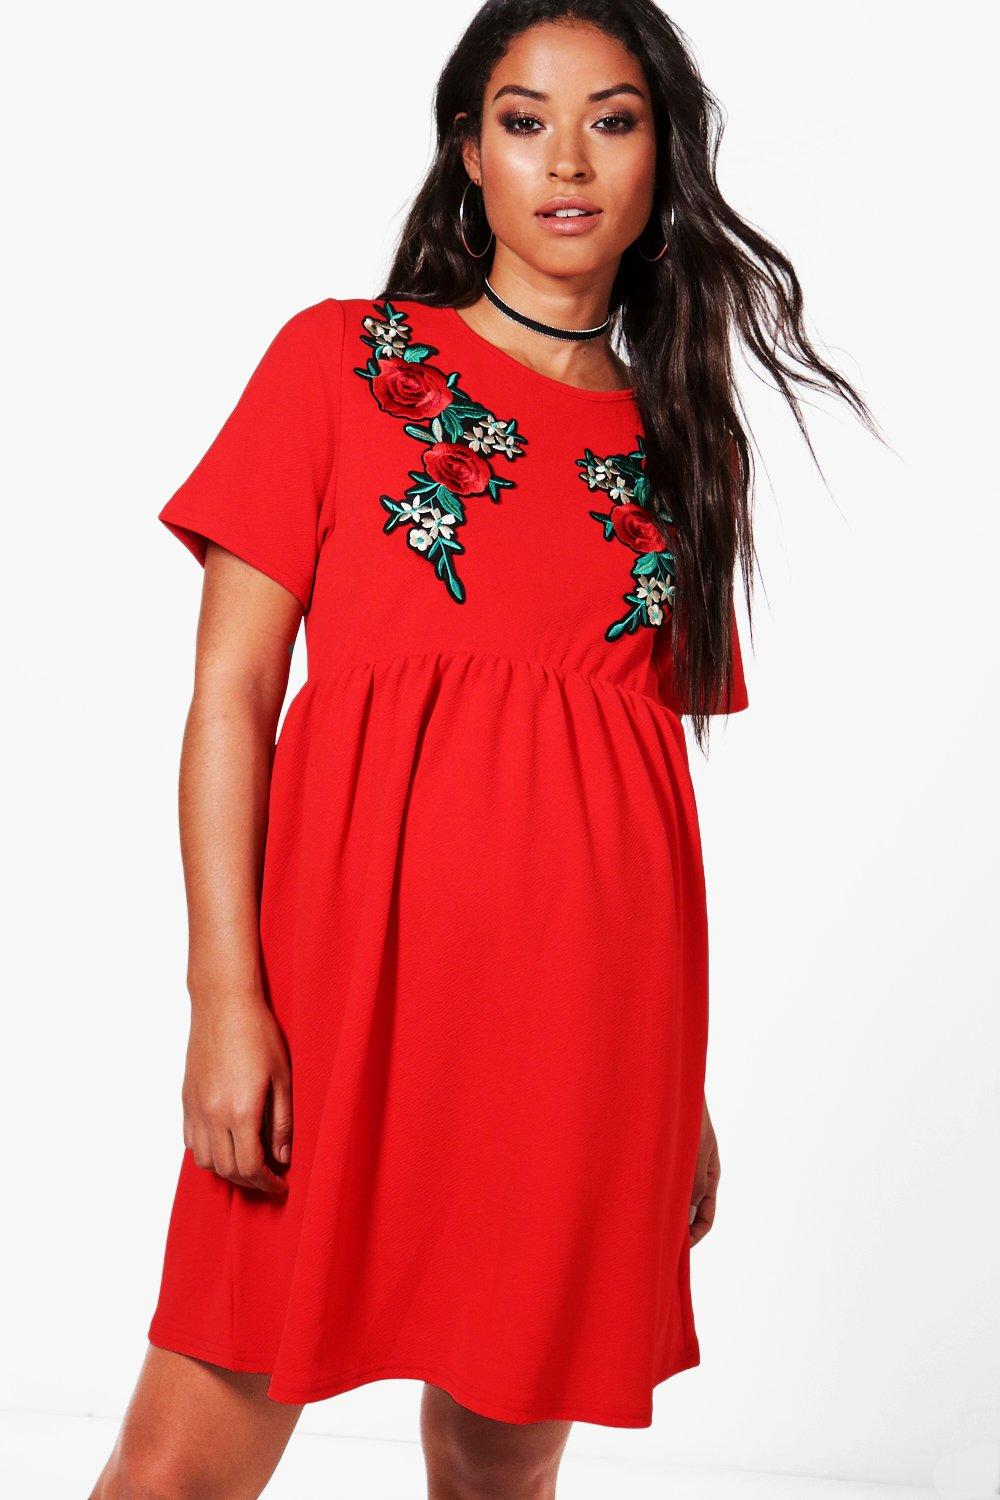 Vintage Style Maternity Clothes Maternity Embroidery Smock Dress $36.00 AT vintagedancer.com